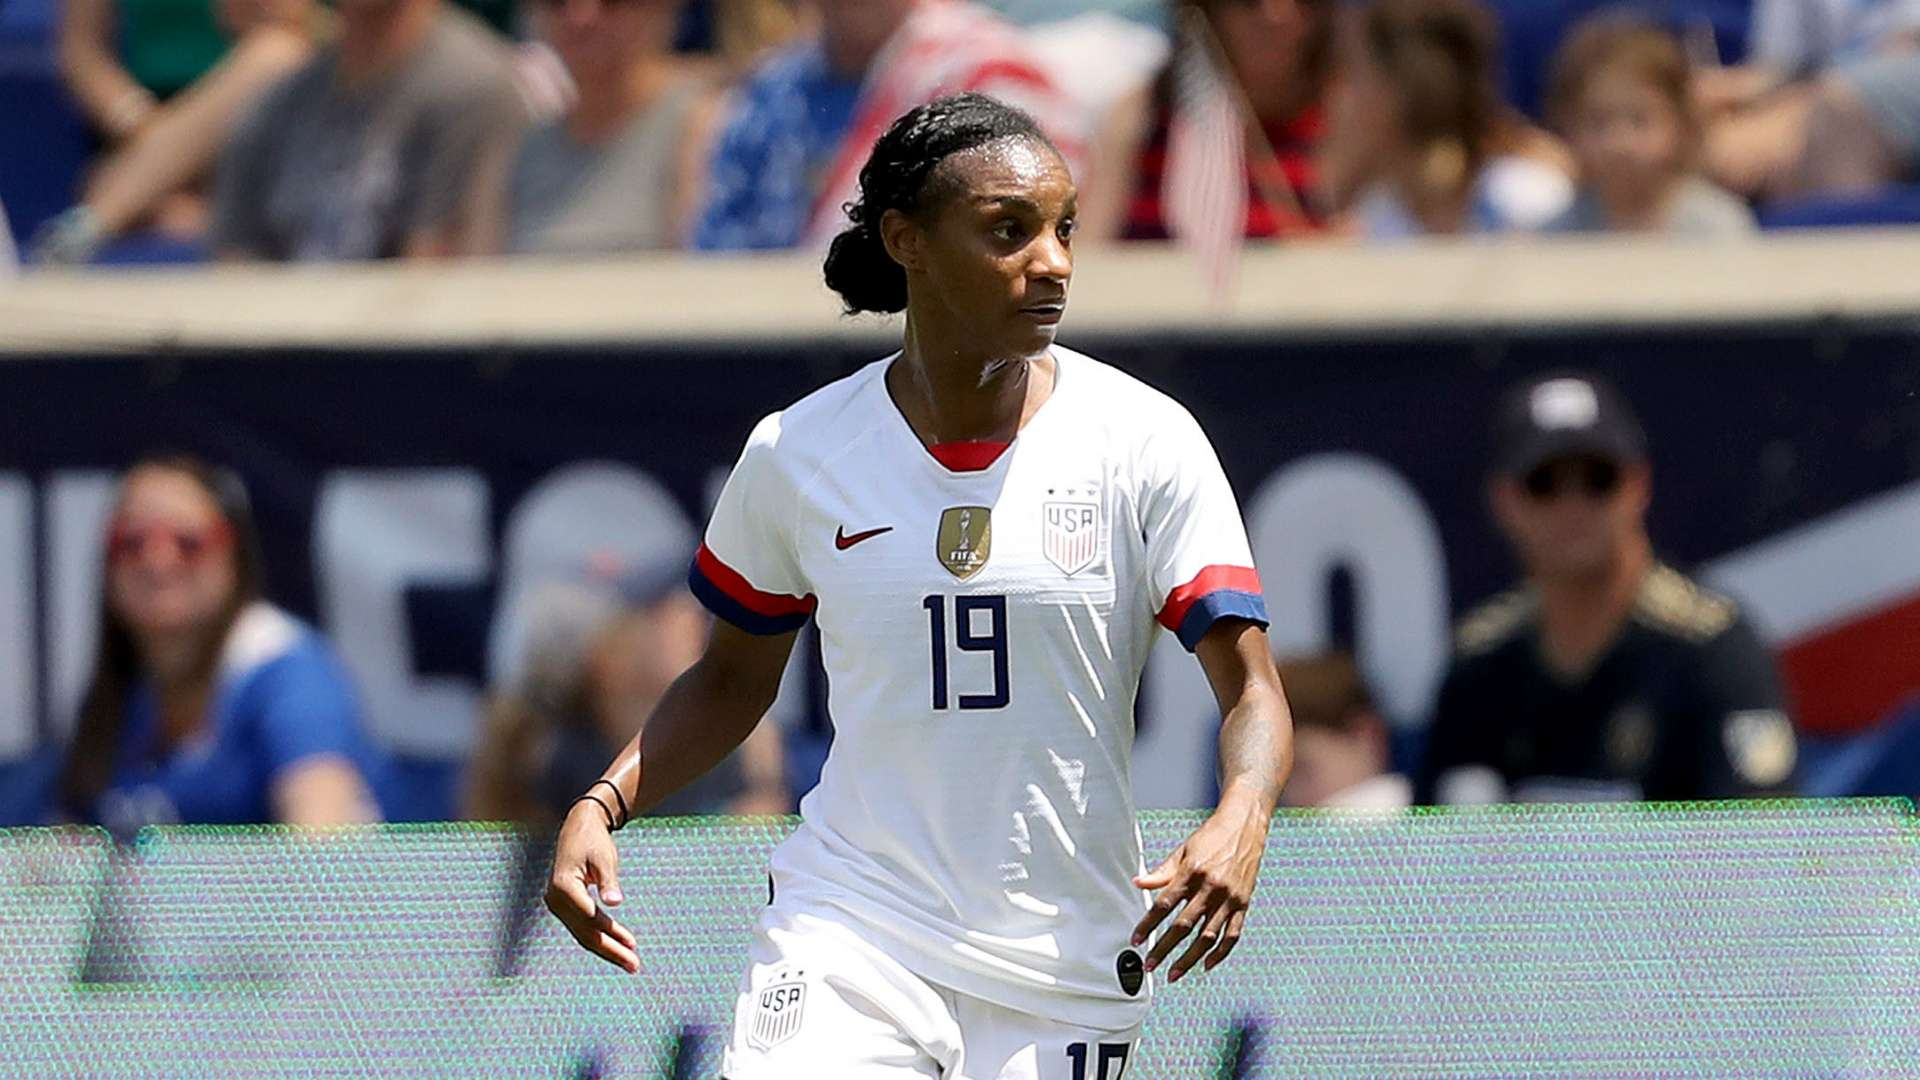 98eadb31175 USWNT  Crystal Dunn impresses and subs shine to put flattering finish on  lackluster day for starters